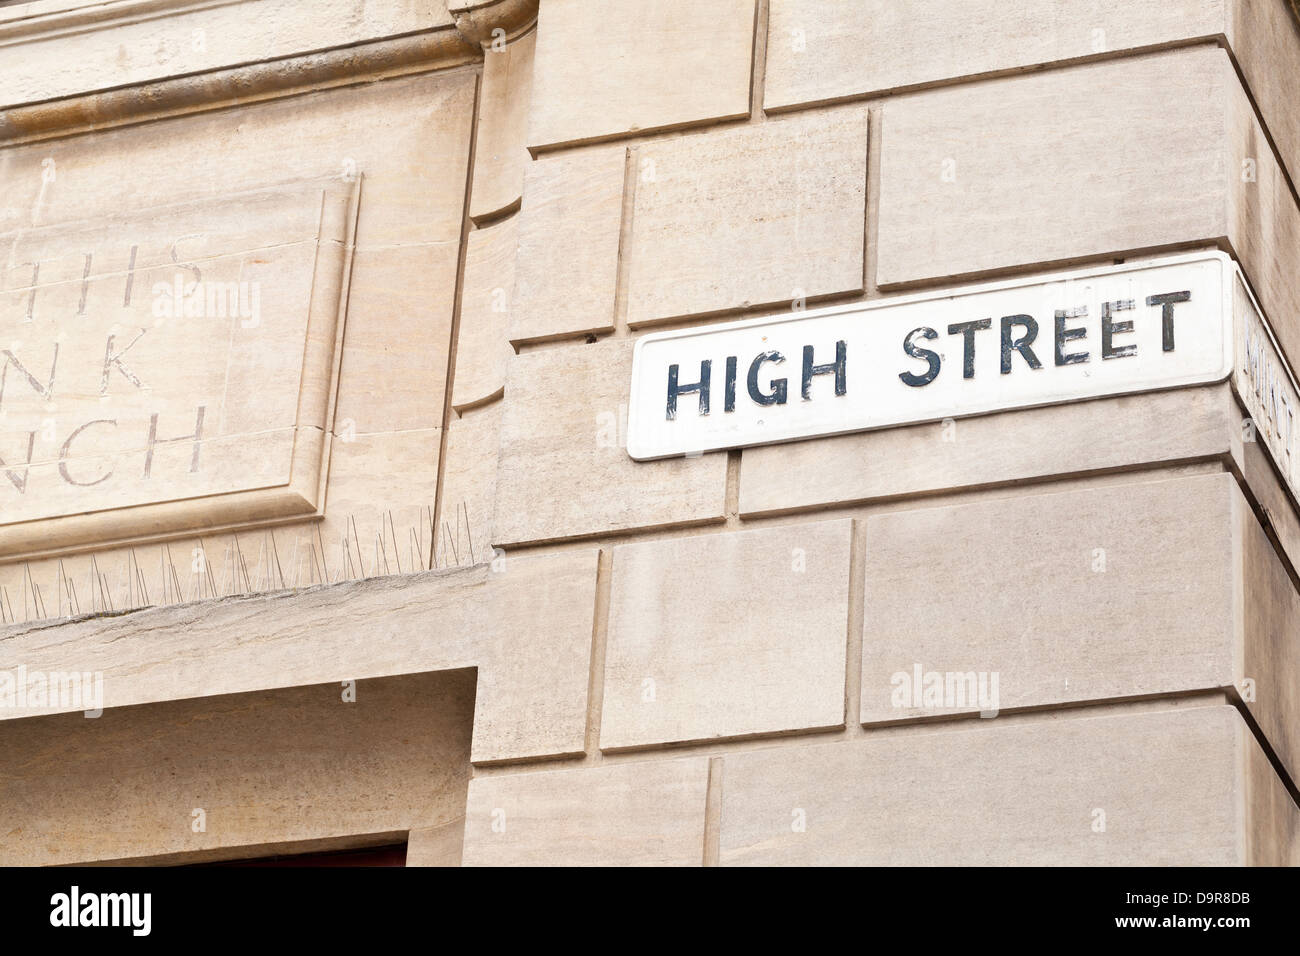 Lincoln - High Street street sign; Lincoln, Lincolnshire, UK, Europe - Stock Image